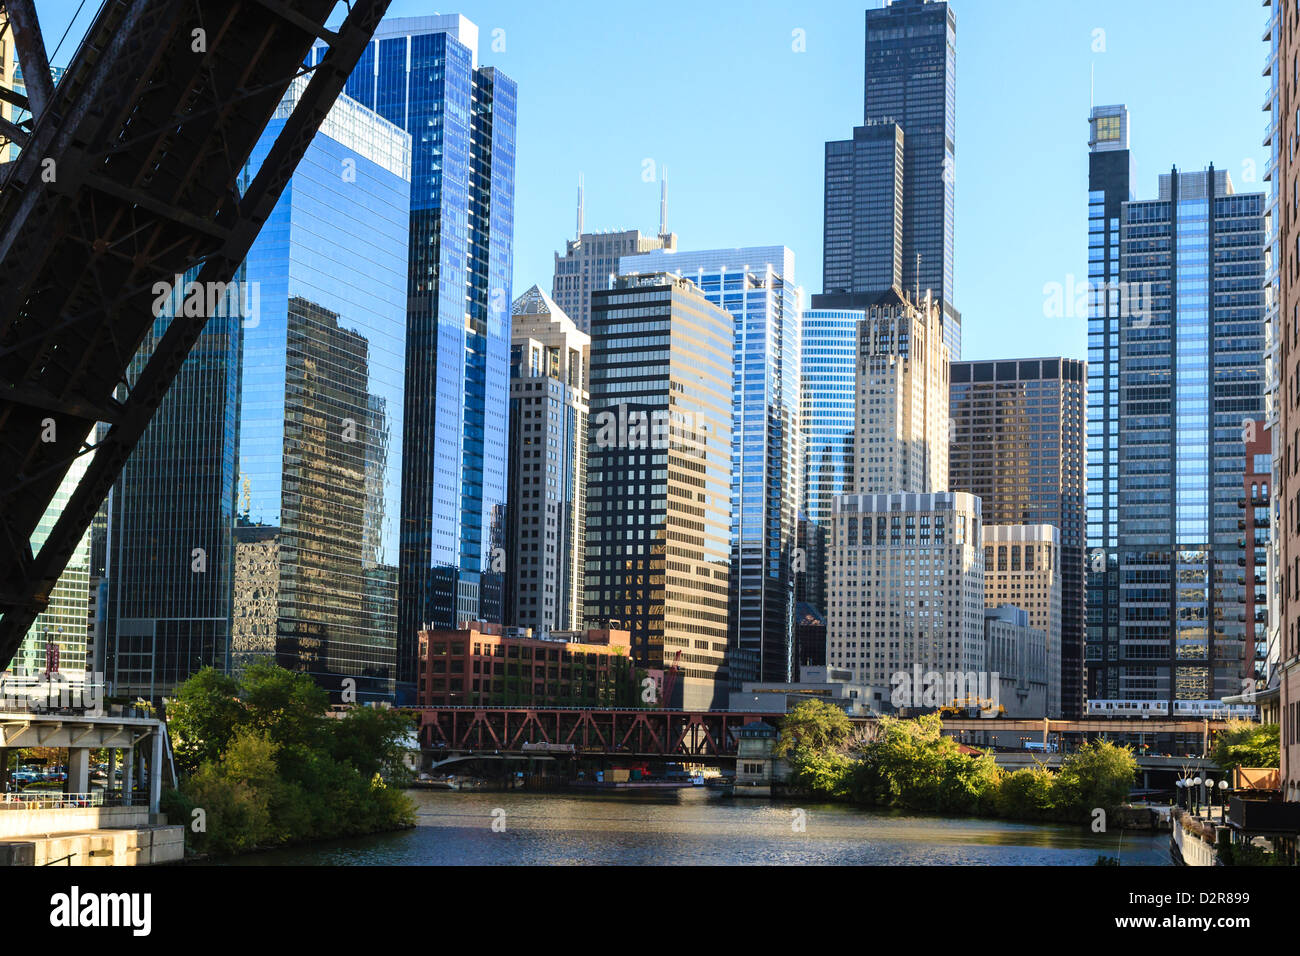 Chicago River and towers including the Willis Tower, with a disused raised rail bridge in the foreground, Chicago, - Stock Image